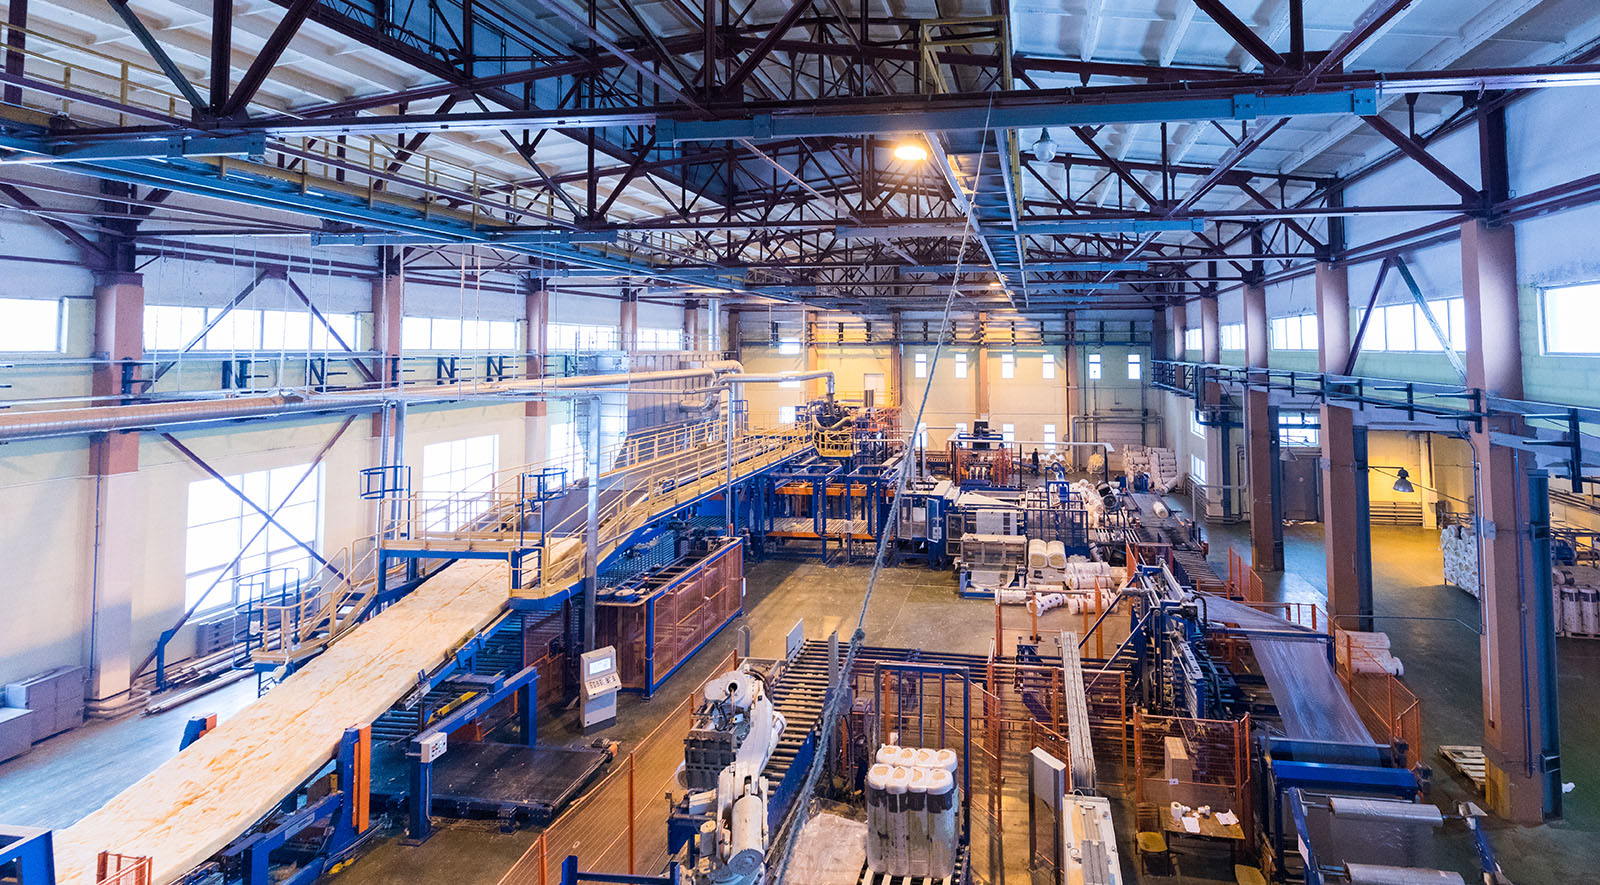 Manufacturing warehouse with lots of equipment in a warehouse